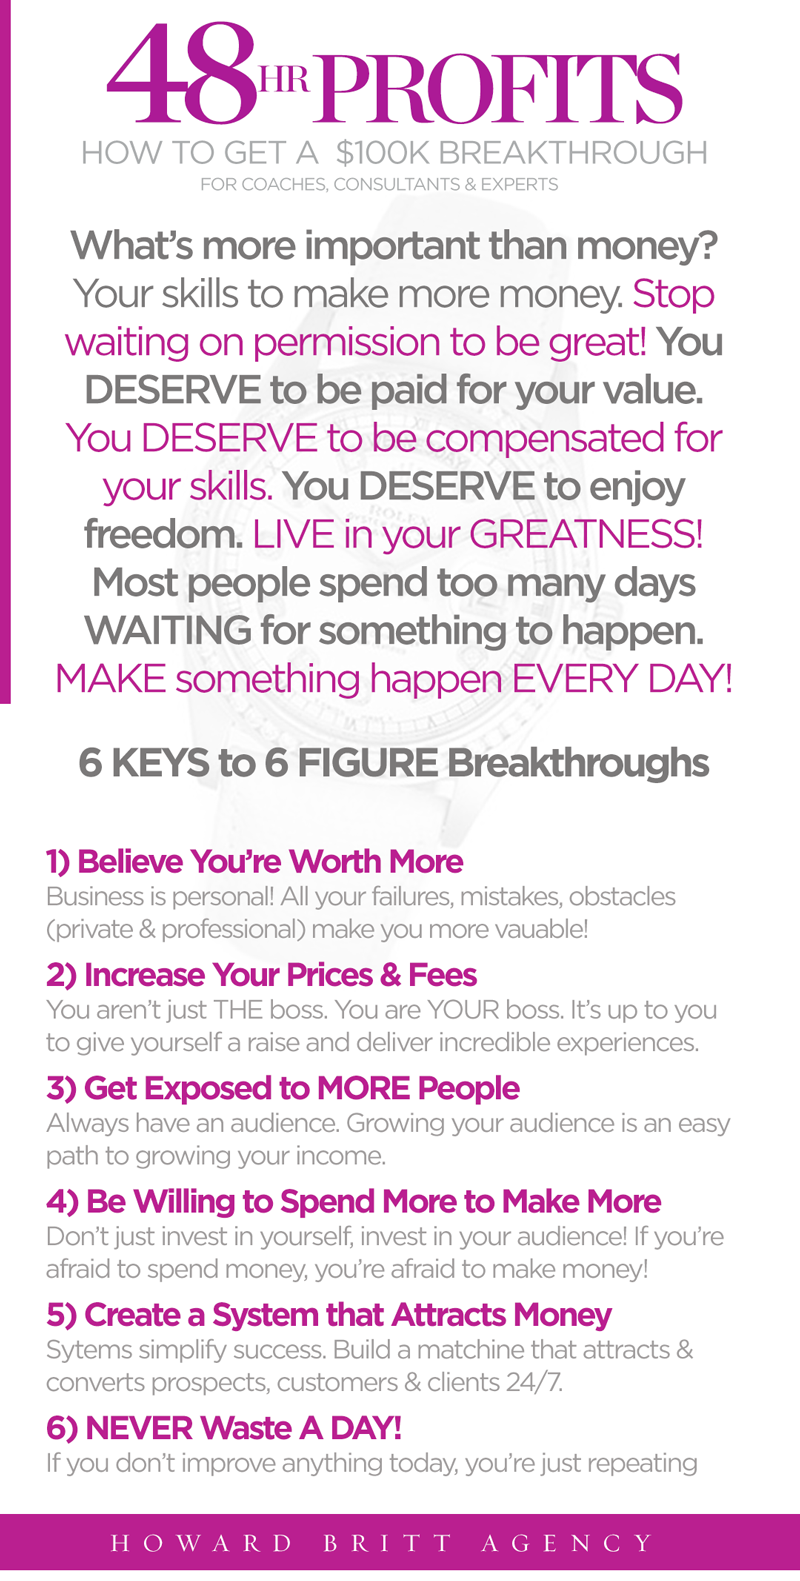 Want To Create 100k Breakthroughs In Your Coaching Consulting